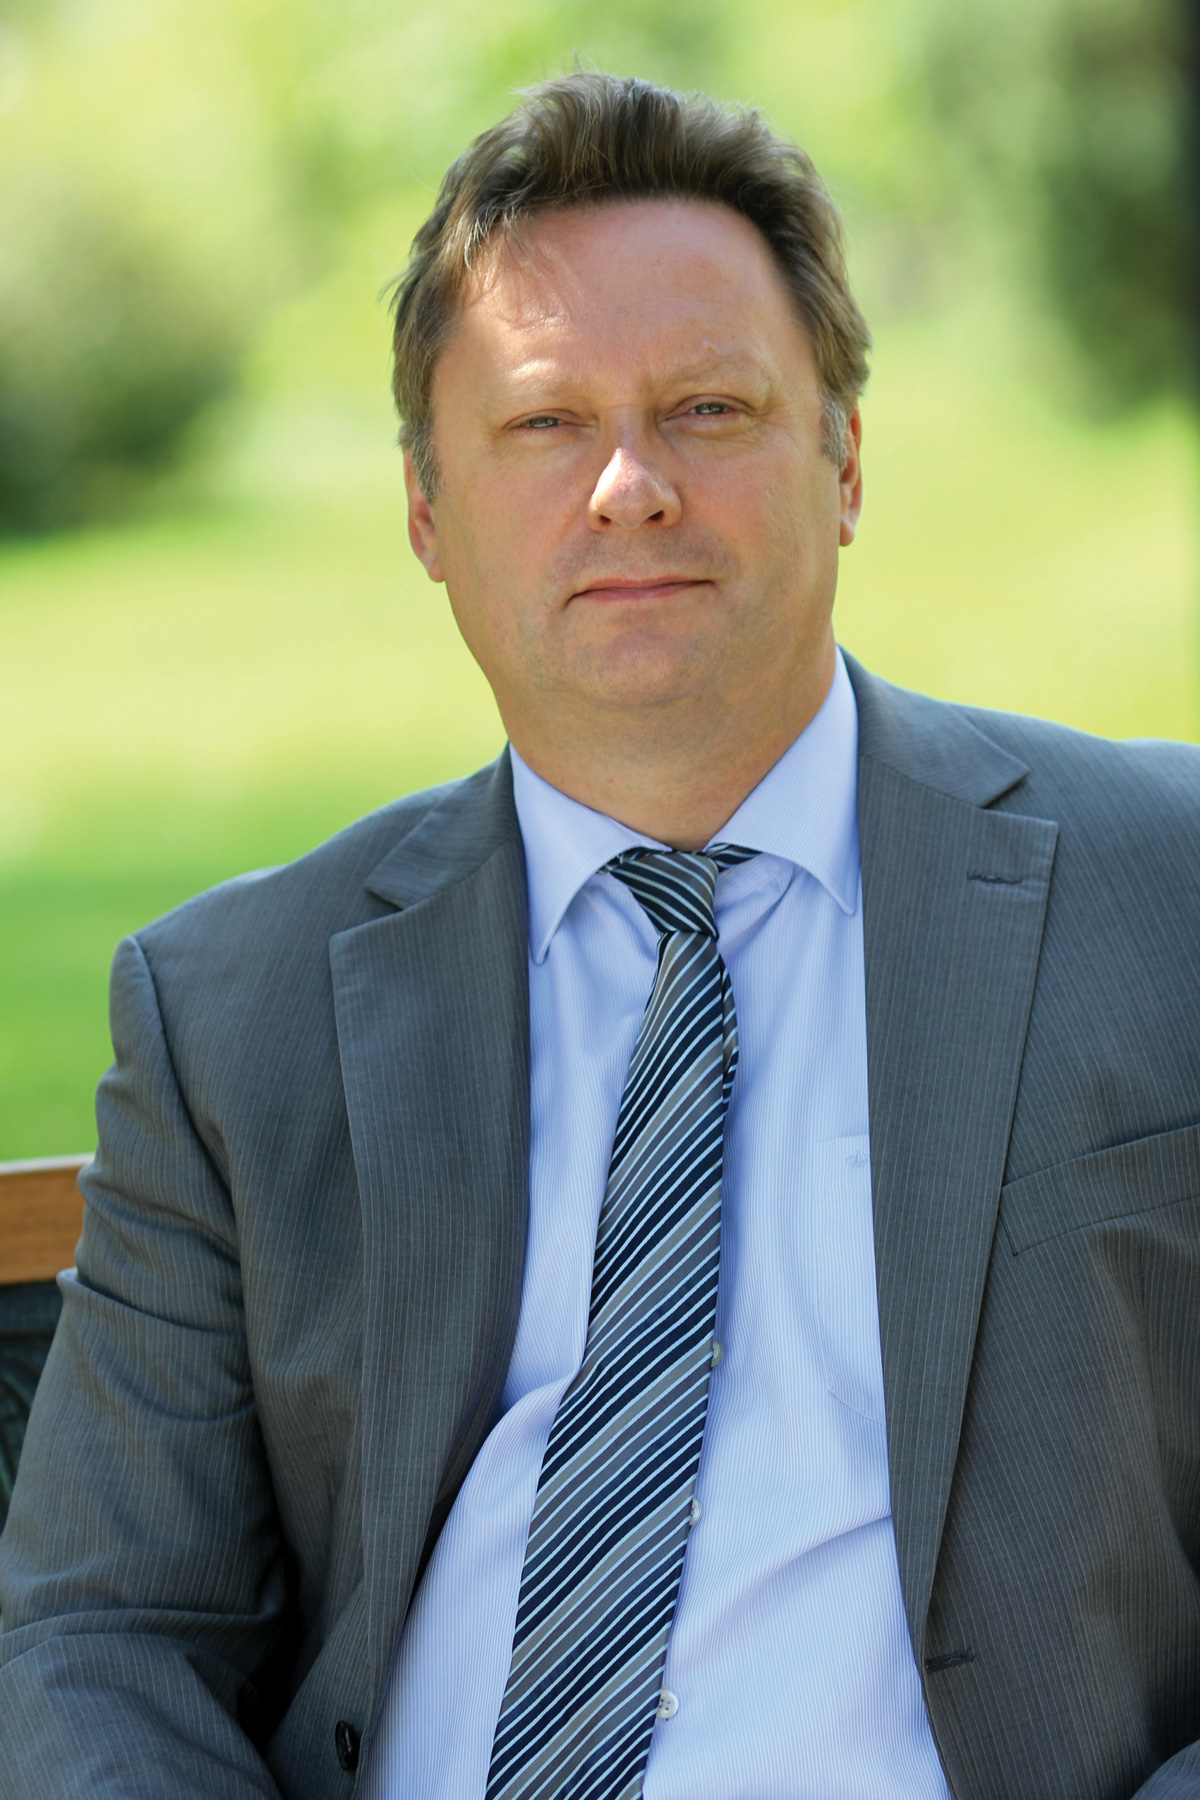 Joerg Matthies, CEO of Georgian Industrial Group